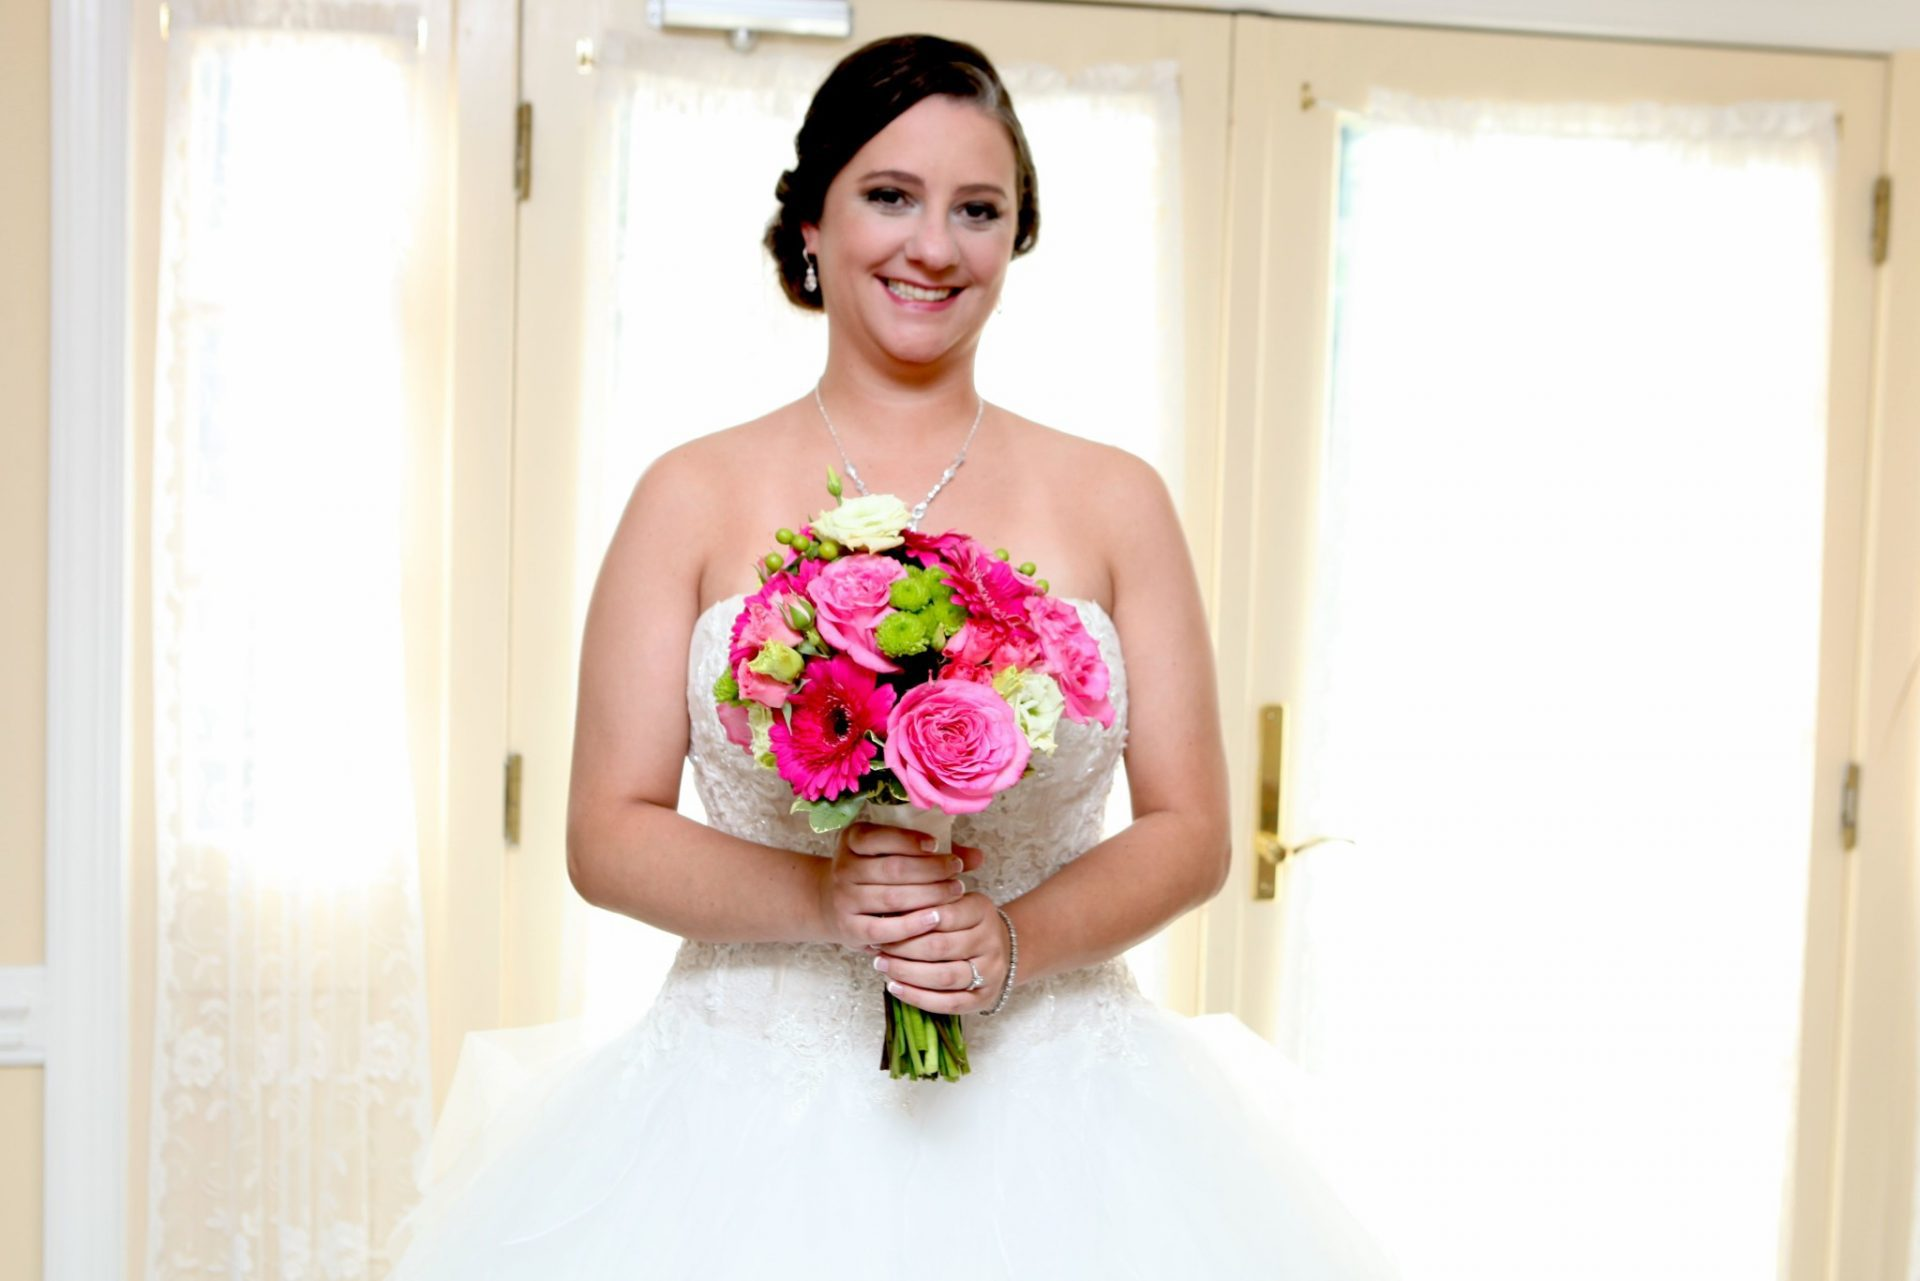 Bride poses by window in bride's room